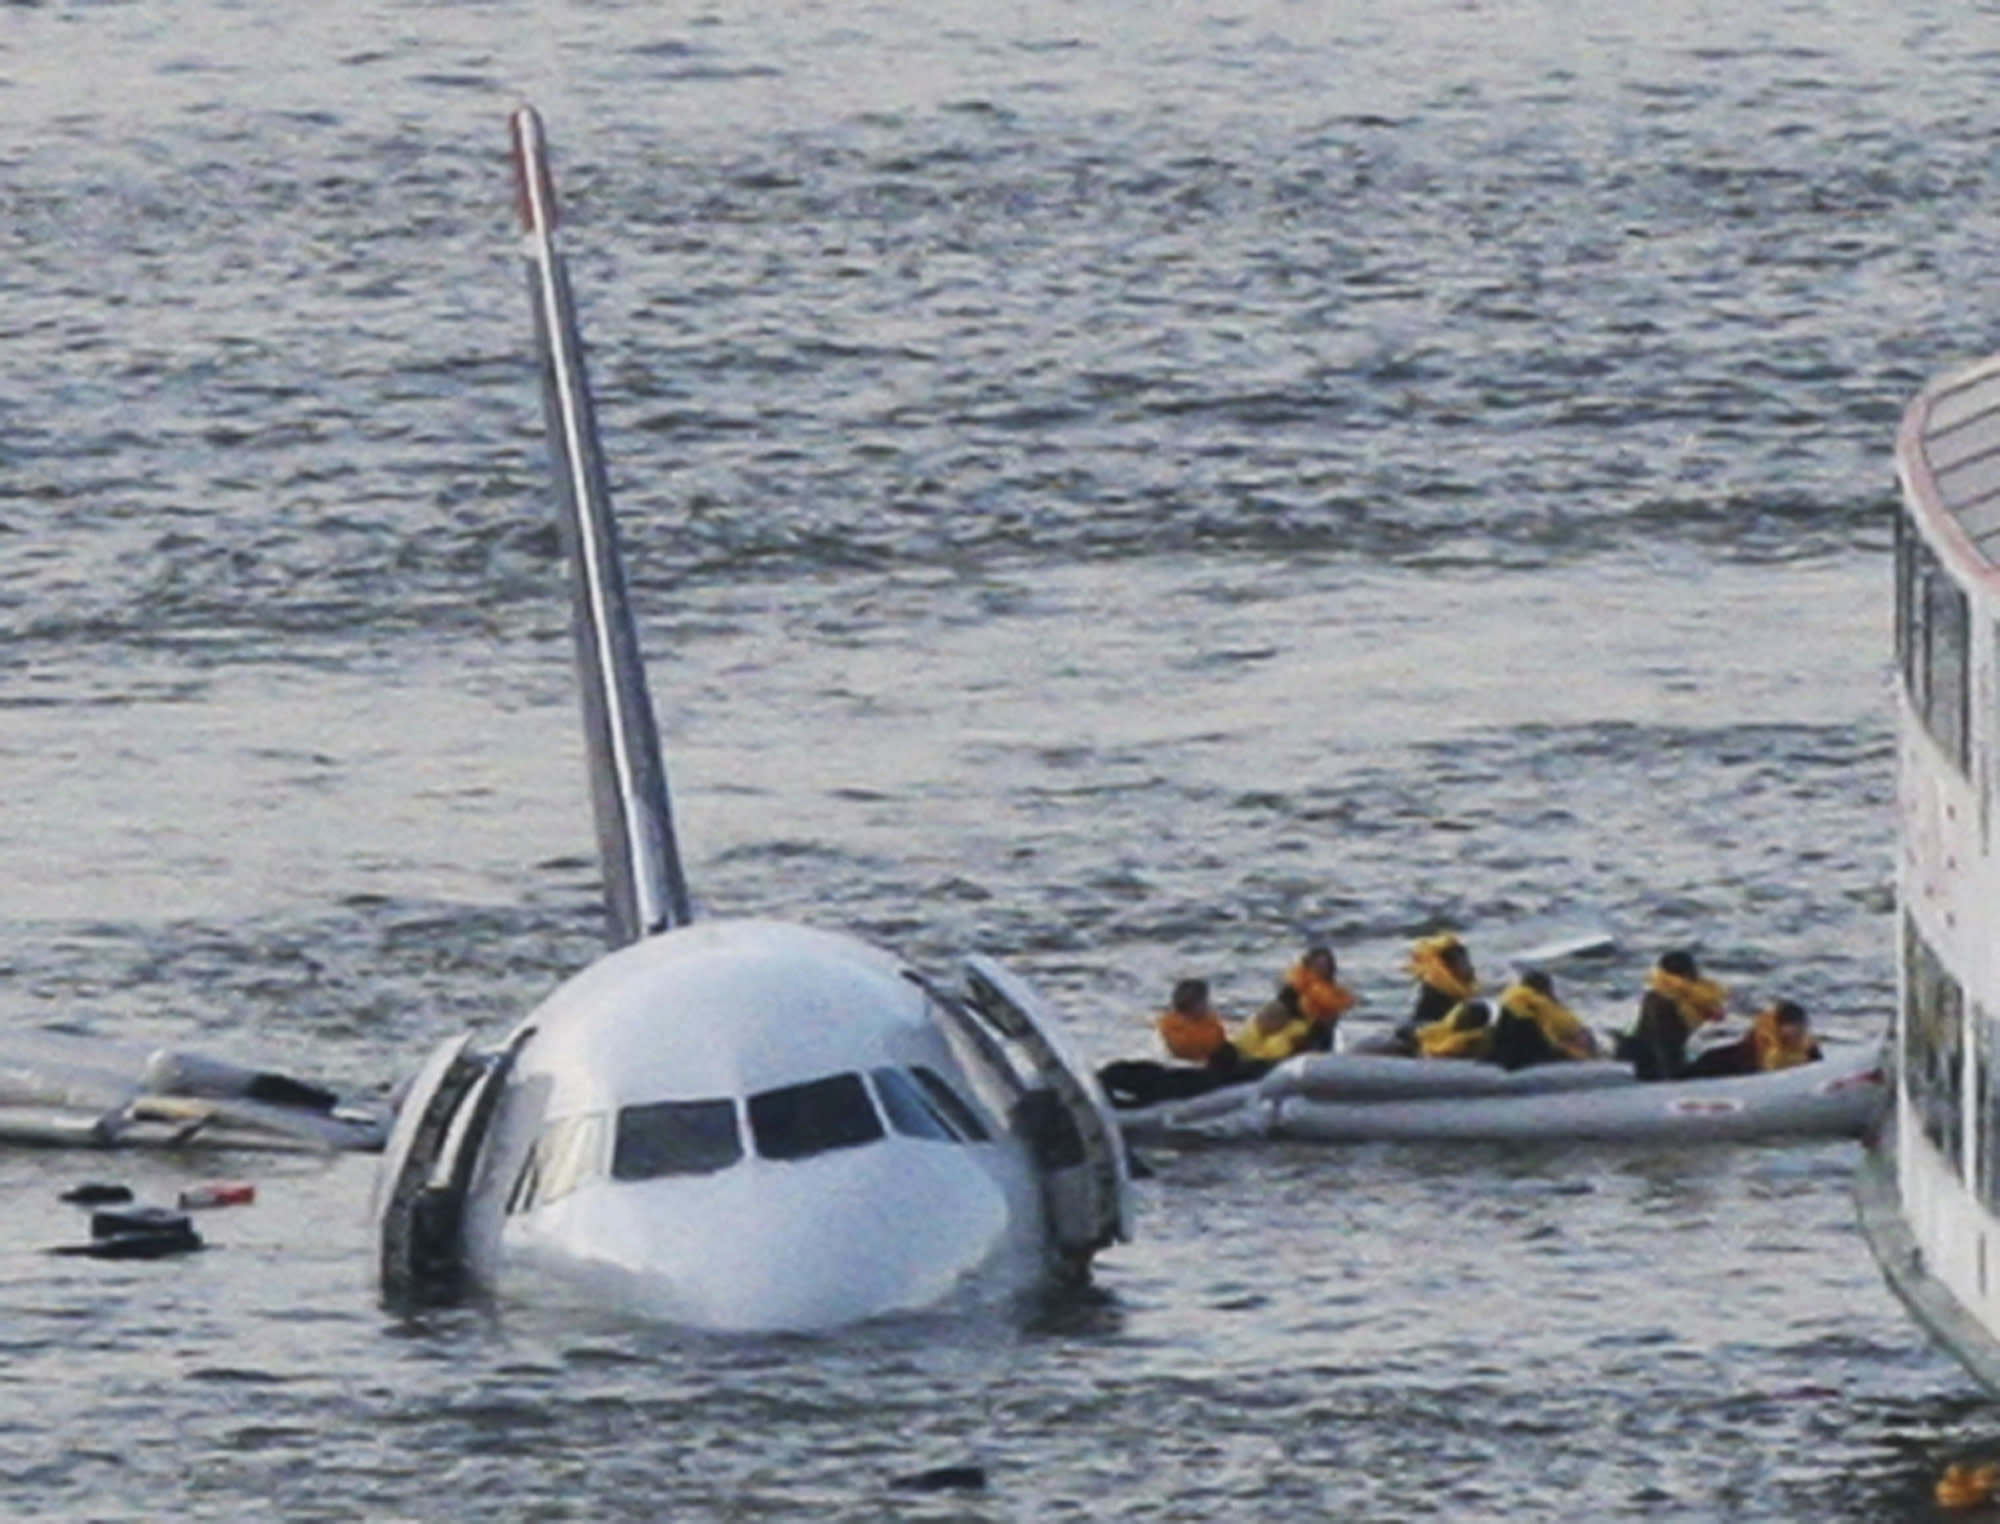 FILE - In this Jan. 15, 2009 file photo, passengers in an inflatable raft move away from an Airbus 320 US Airways aircraft that has gone down in the Hudson River in New York. Passengers in plane crashes like the Aeromexico accident on Tuesday, July 31, 2018, in which no one died, have better chances of survival due to better aircraft construction and safety standards, experts say. (AP Photo/Bebeto Matthews, File)